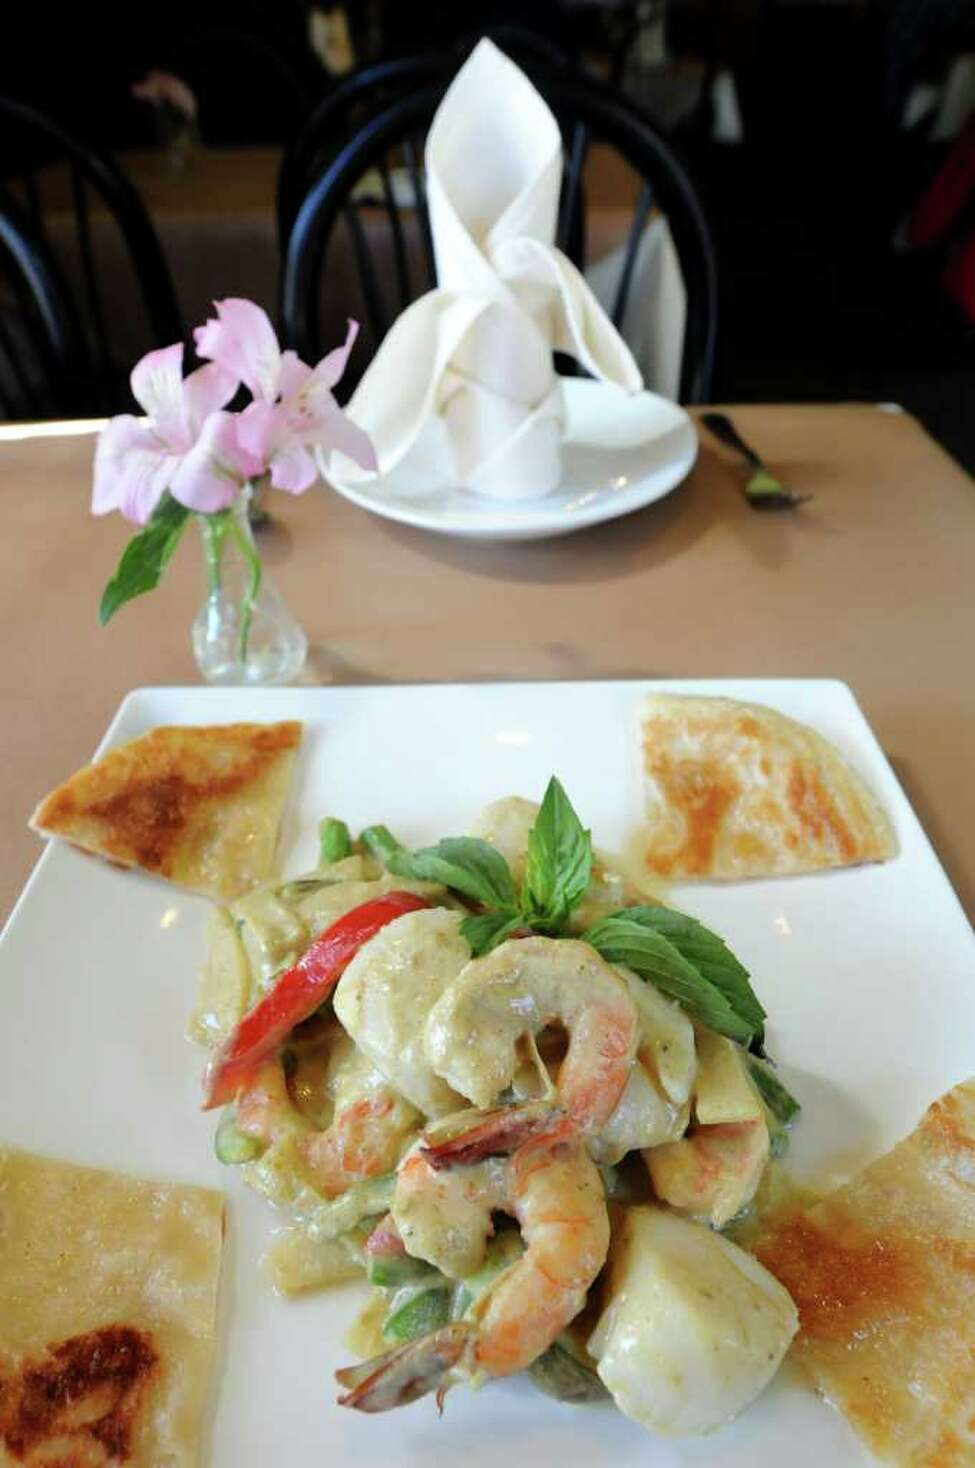 Dried Emeral Curry dish, which is stir-fried shrimp and scallops with string beans, Thai eggplant, bell pepper, bamboo shoots, kachai, basil and green curry paste with coconut milk on Wednesday, March 28, 2012, at Kinnaree Asian Restaurant in Albany, N.Y. (Cindy Schultz / Times Union)